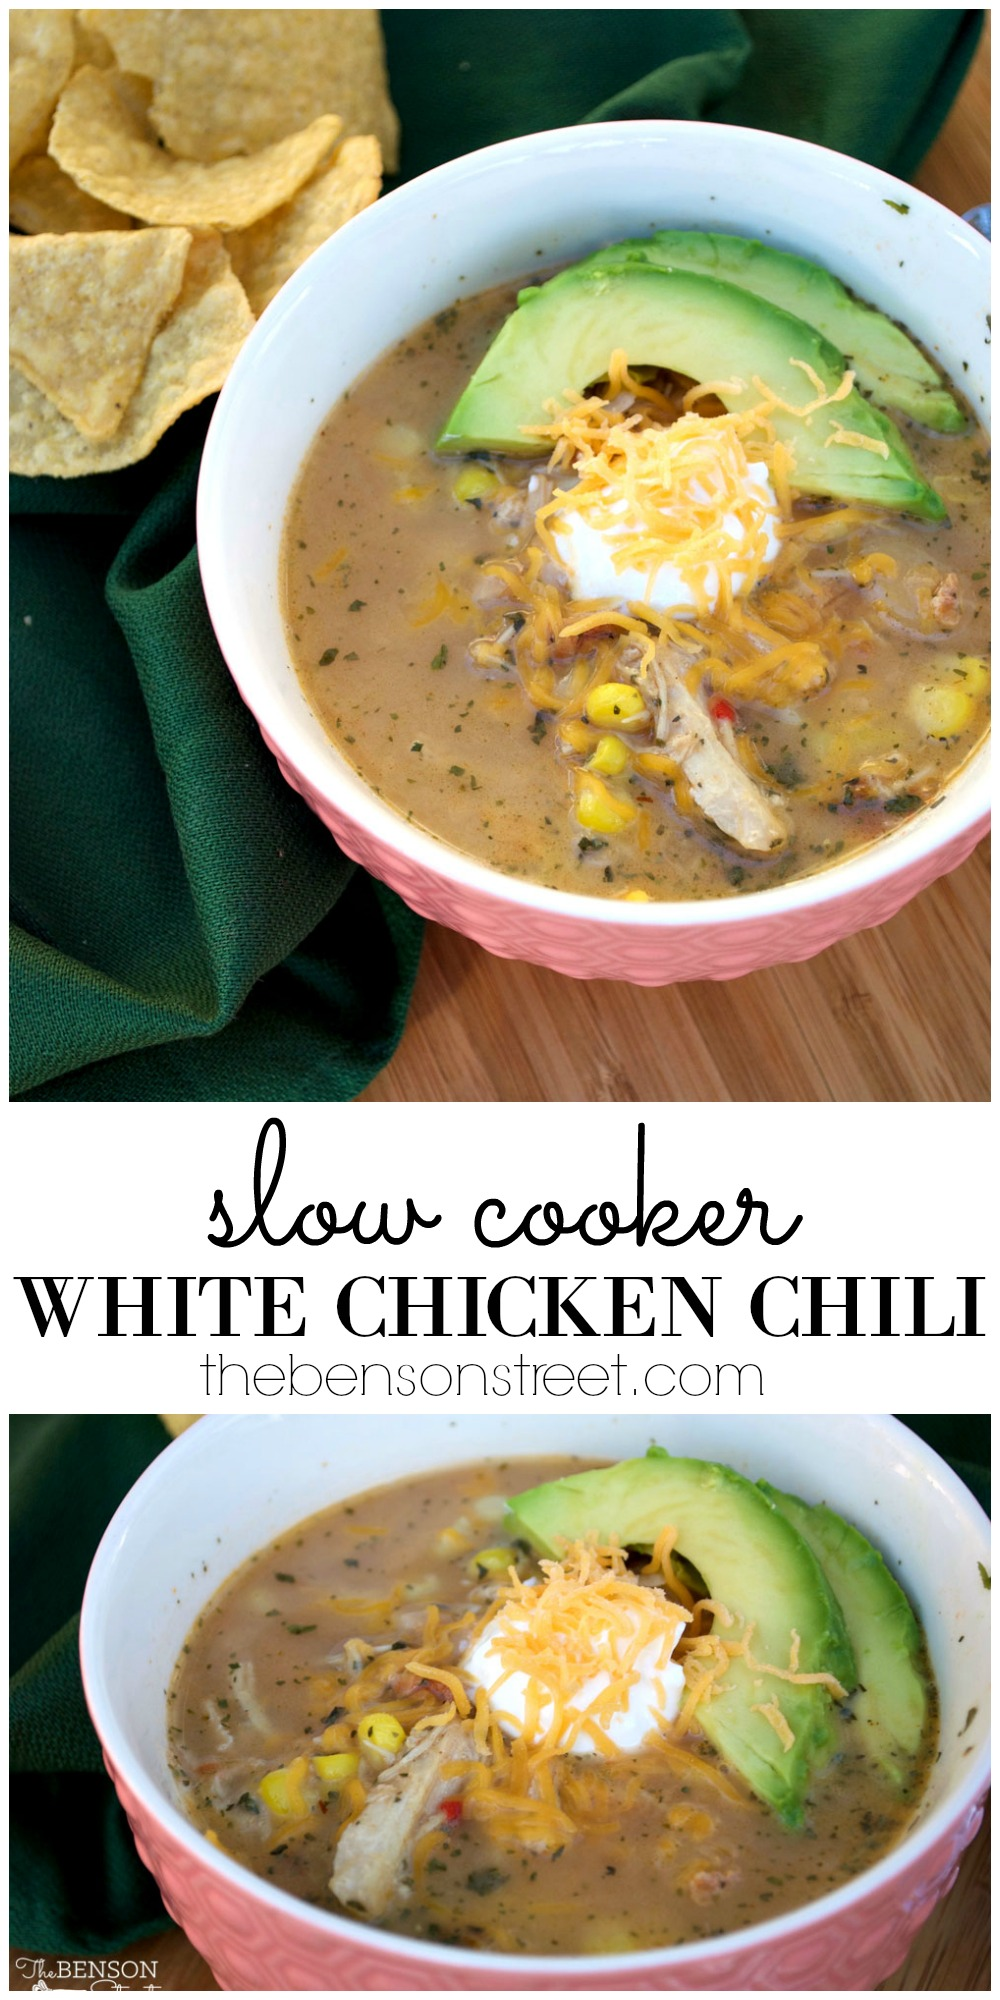 A filling, easy, and delicious dinner recipe for slow cooker white chicken chili. Full of lots of nutritious veggies, beans, and more. Get the recipe at thebensonstreet.com